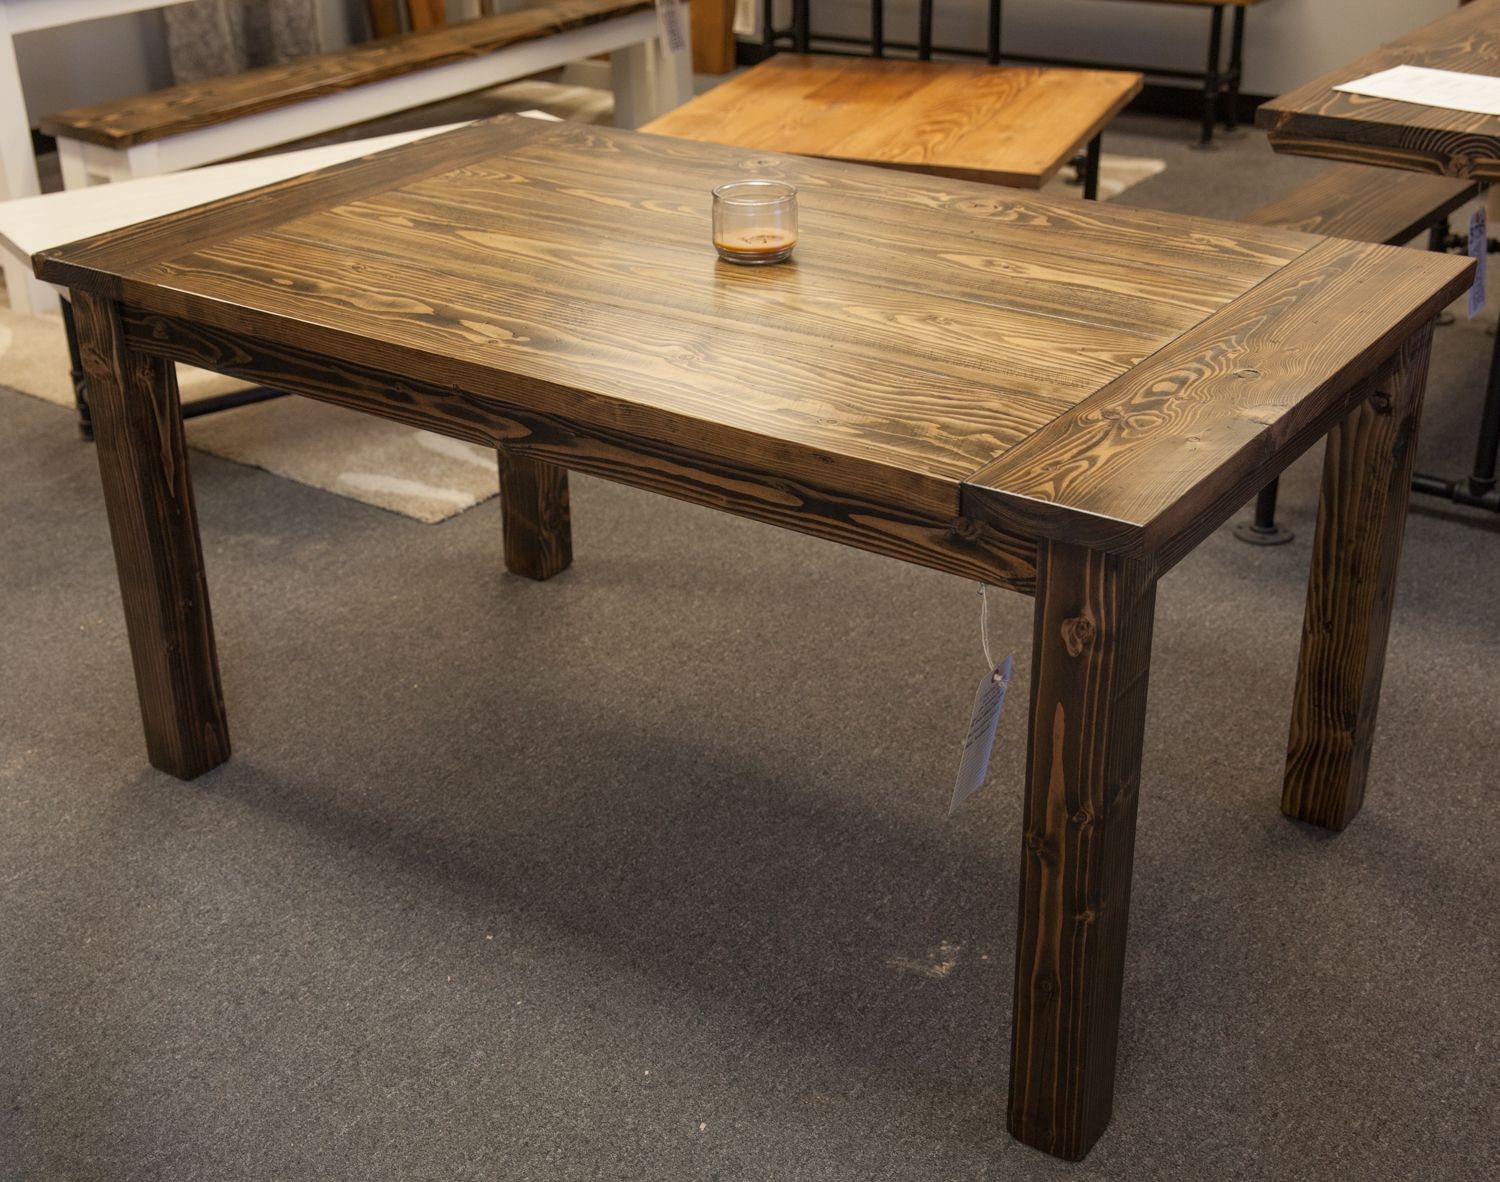 solid wood kitchen tables Solid wood farmhouse table with breadboards Distressed dark walnut top Kitchen table Dining